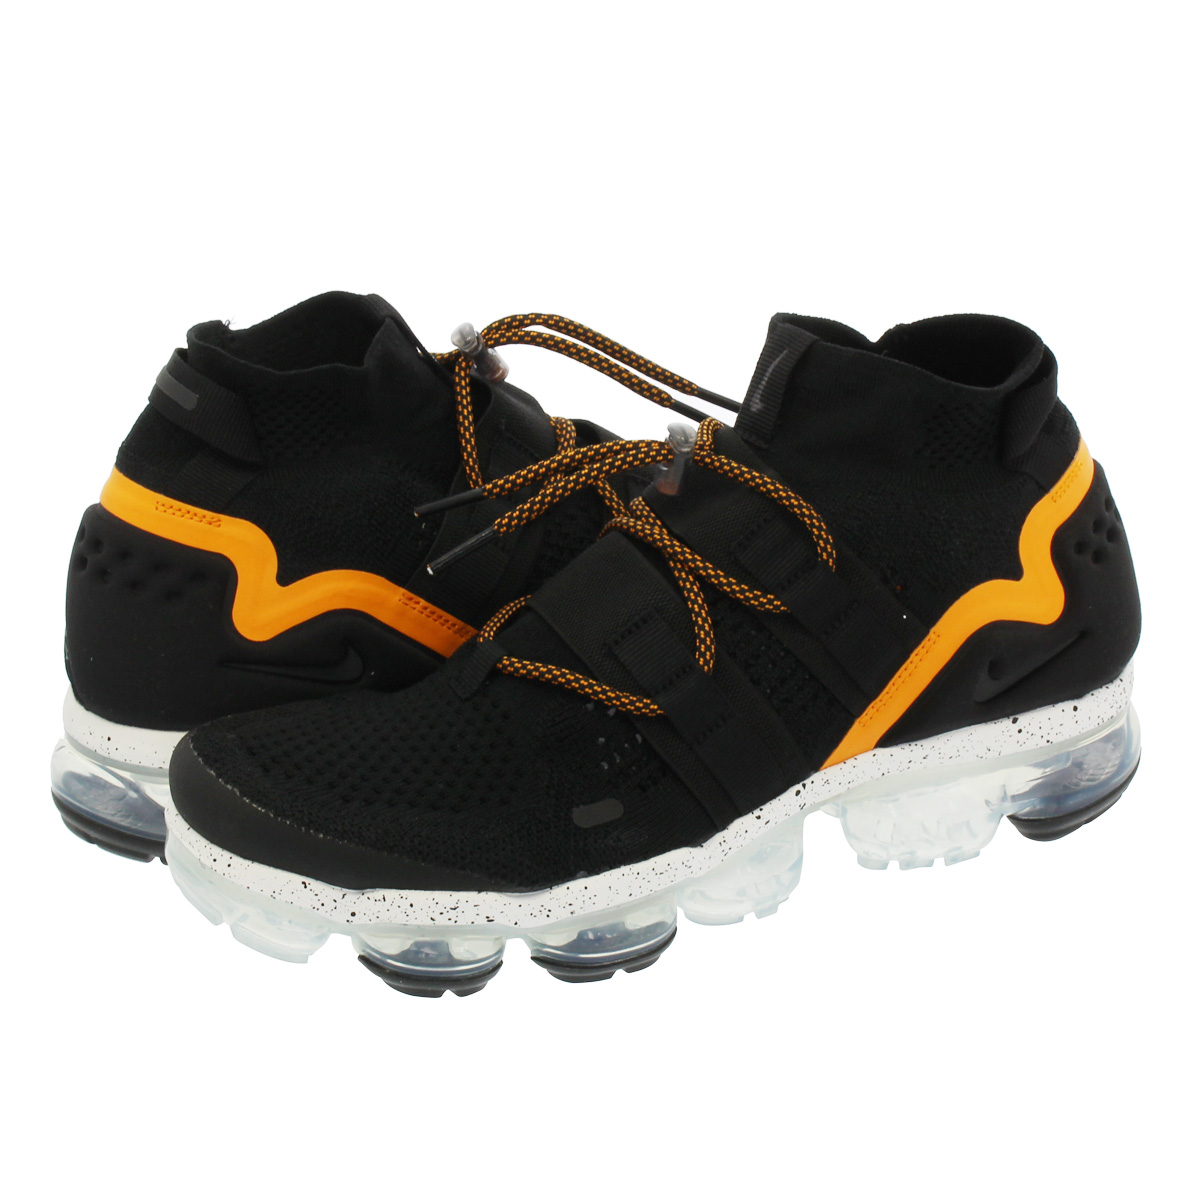 5645f10ecac NIKE AIR VAPORMAX FLYKNIT UTILITY Nike vapor max fried food knit utility  BLACK ORANGE PEEL